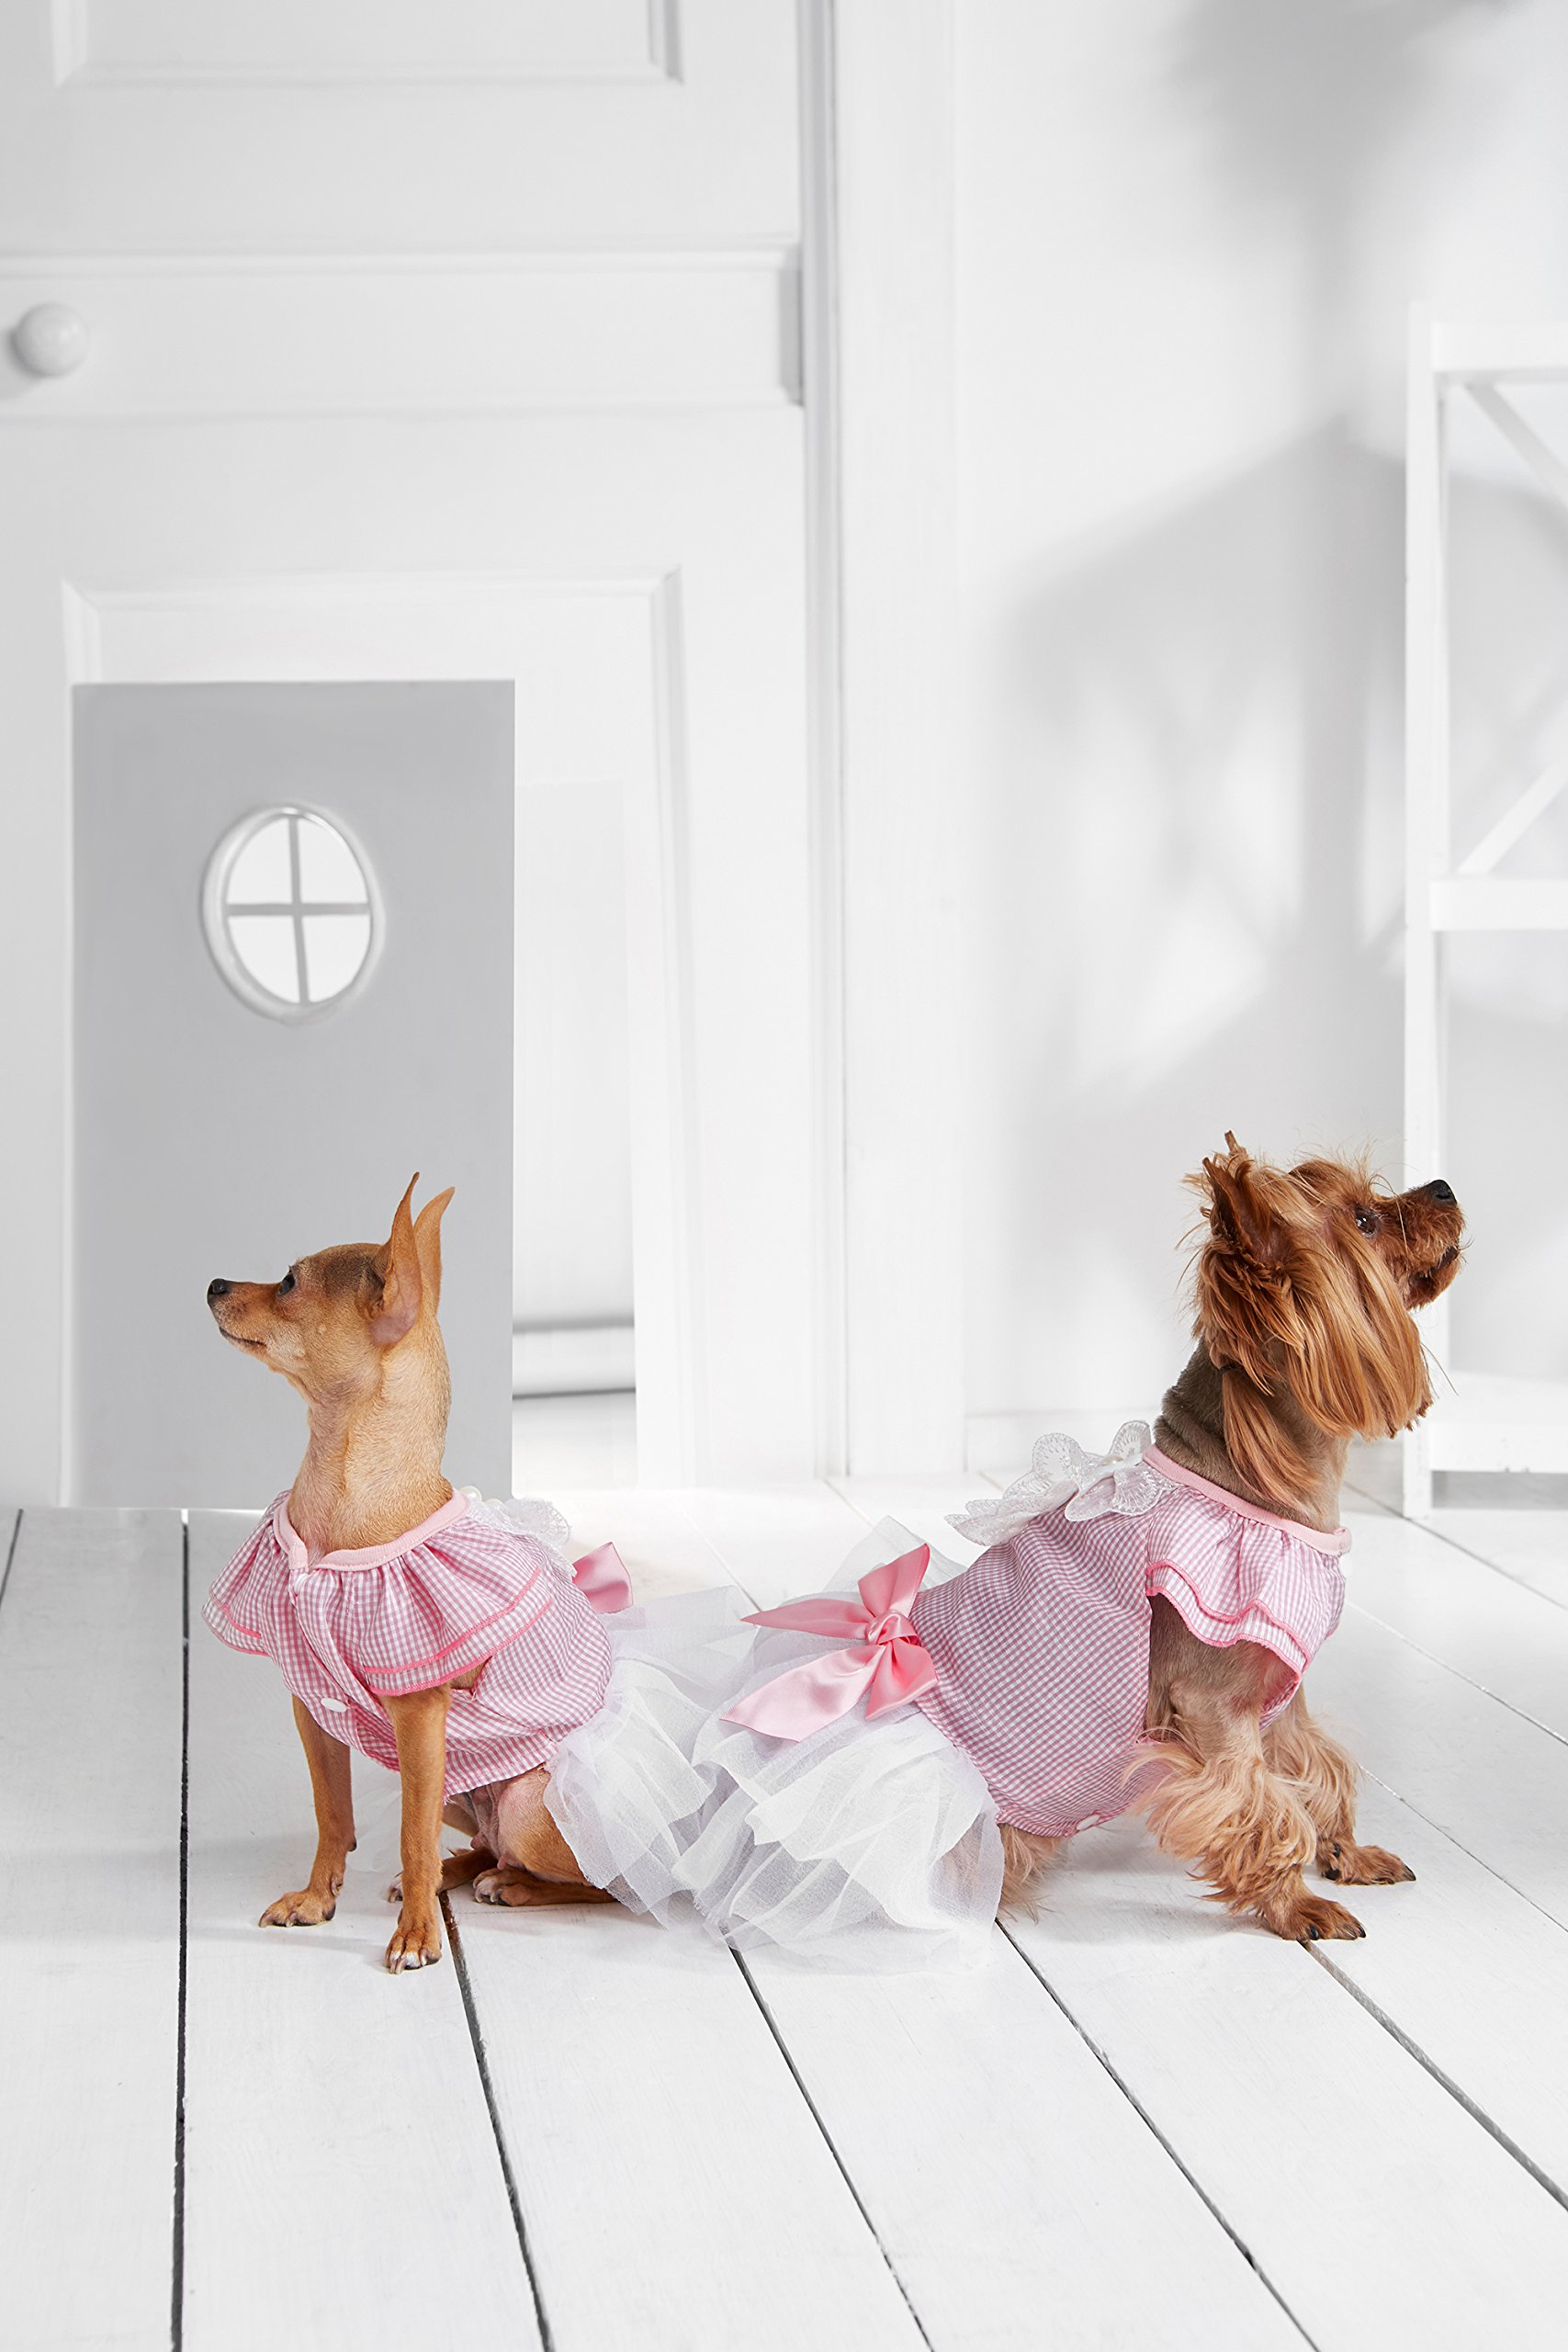 "Small Dog Gingham Bib Dress With Satin Bow Tiered Skirt Snaps Dogs Summer Outfit (Toy Plus: 10"" / 5-9 lbs, Pink, White)"